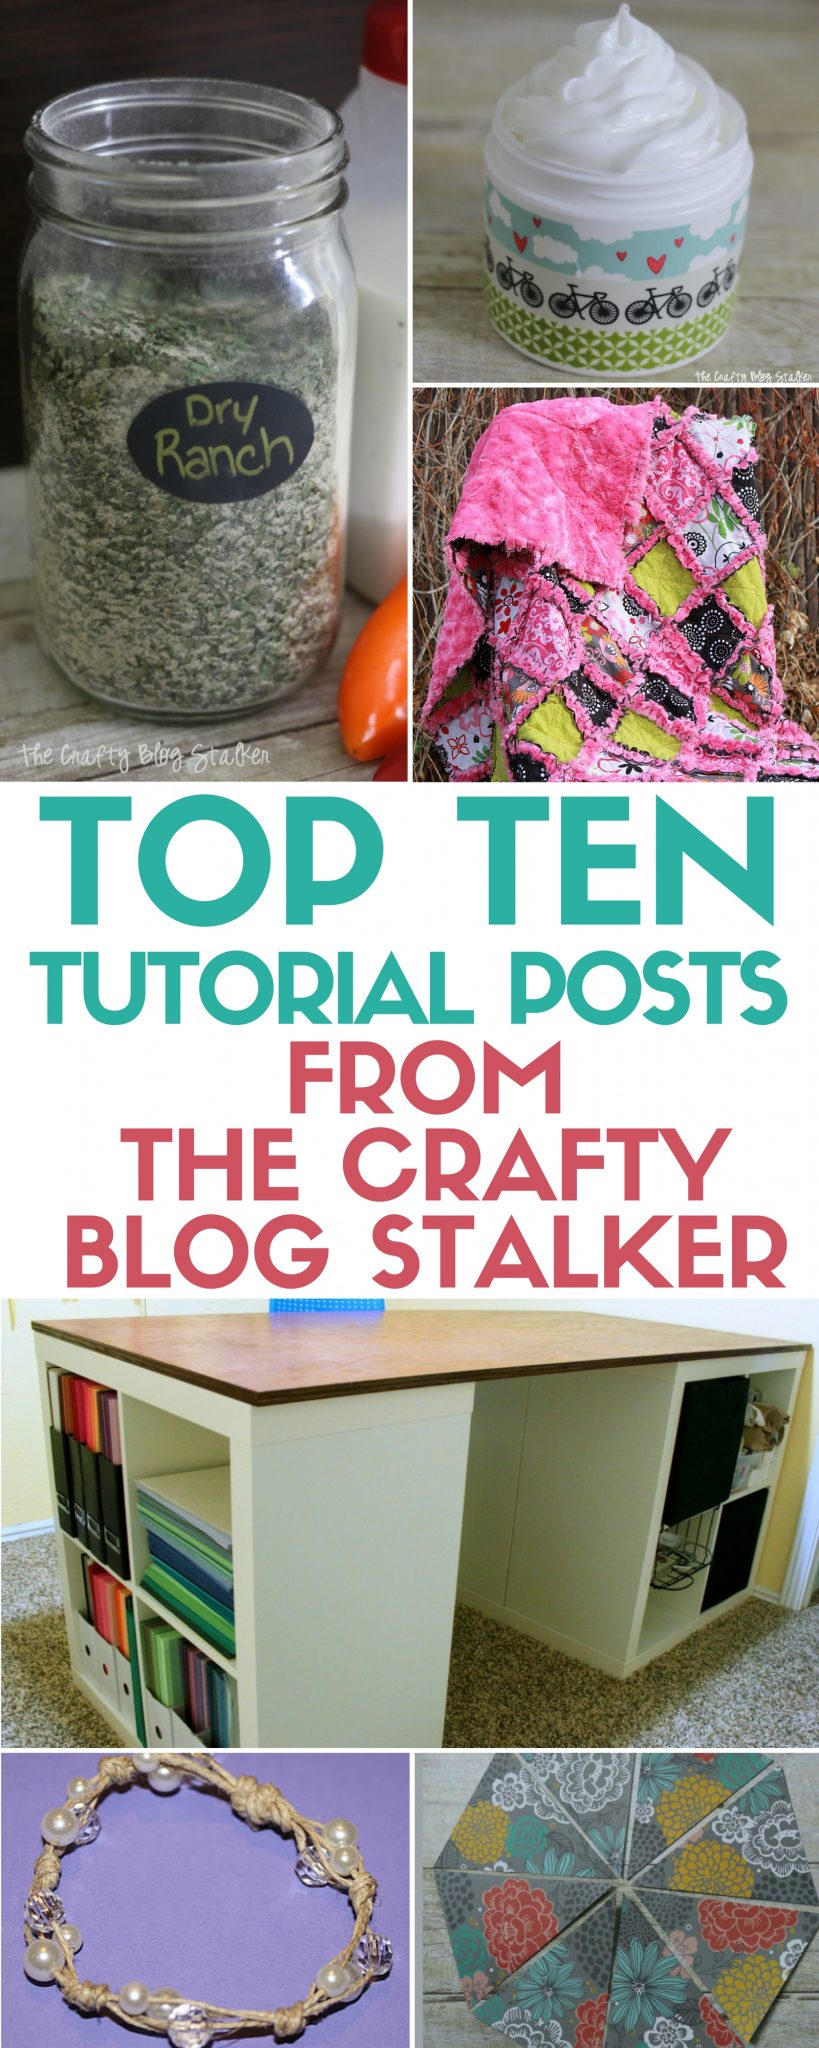 Welcome to The Crafty Blog Stalker site! Get to know this fun tutorial based site by checking out the top ten most viewed simple DIY craft tutorial ideas!